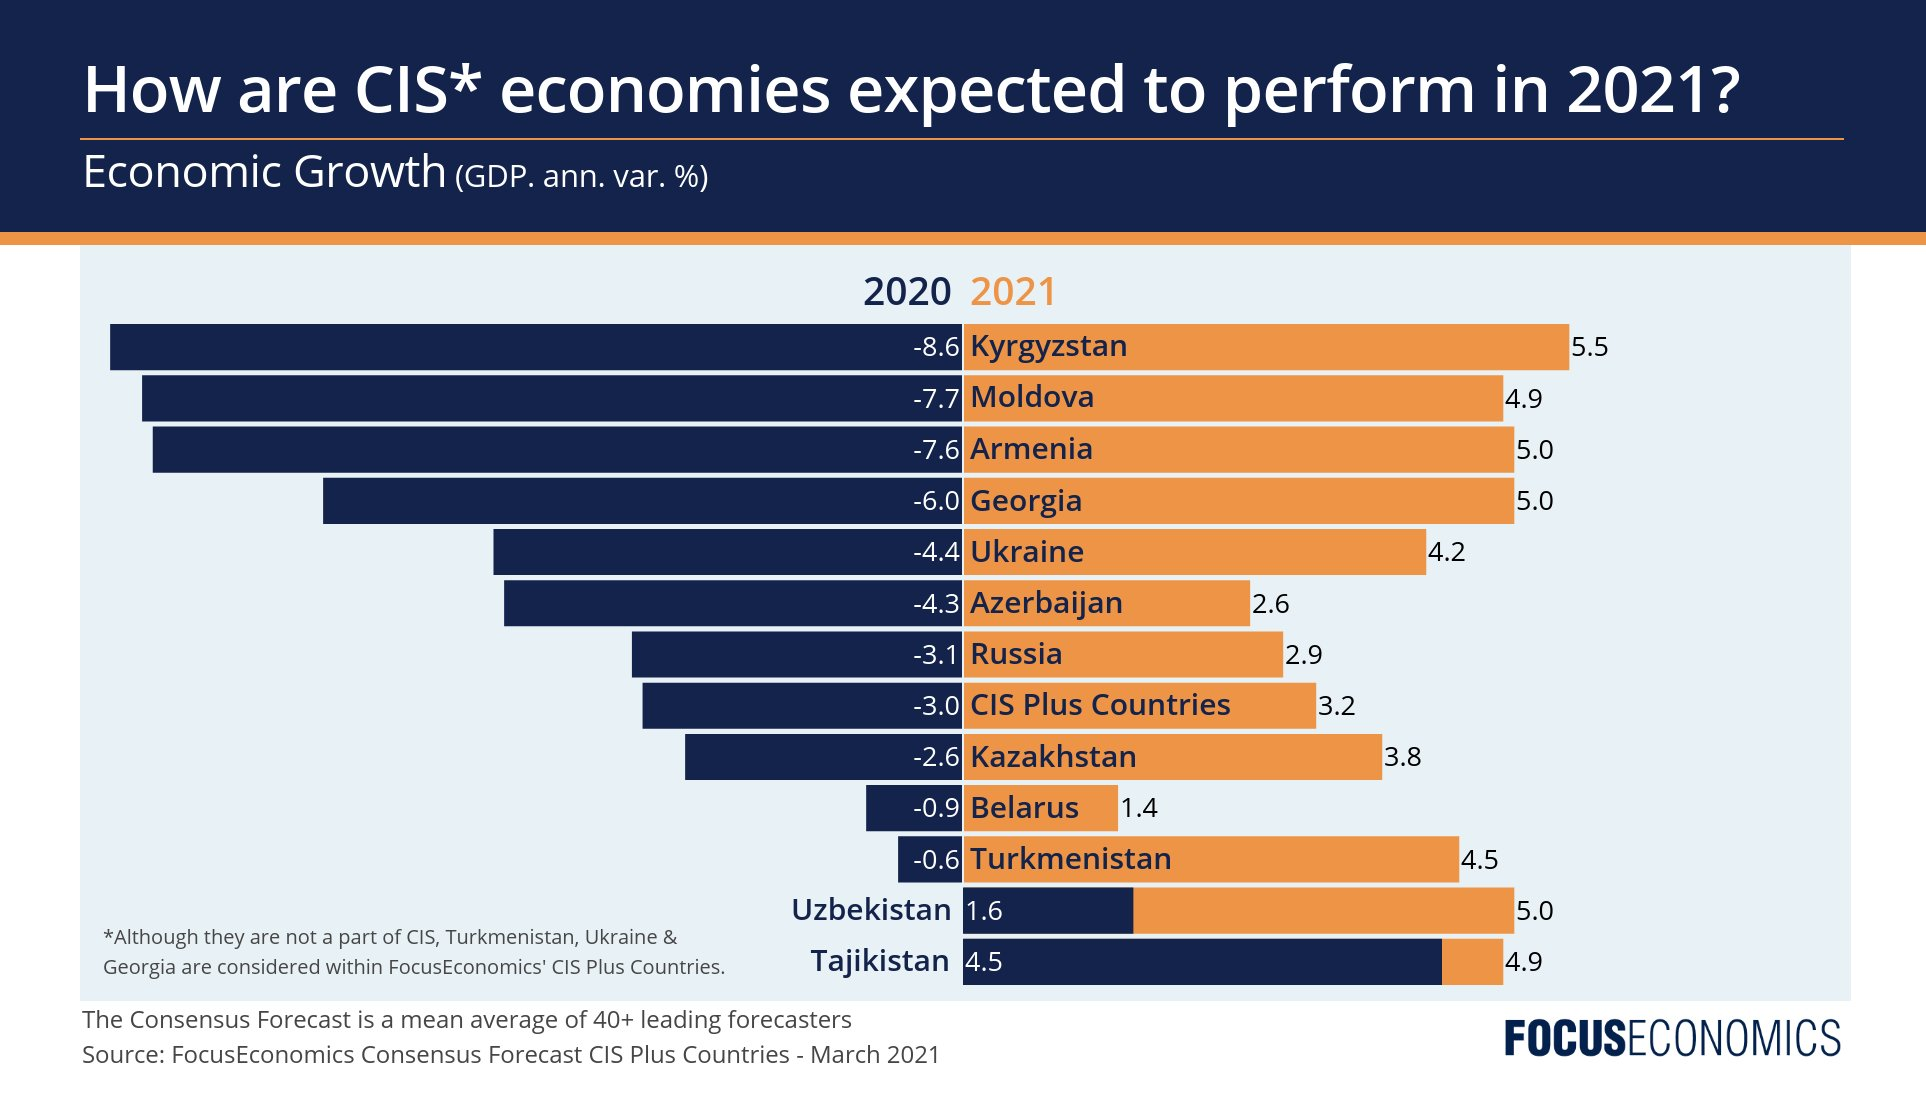 How are CIS economies expected to perform in 2021?